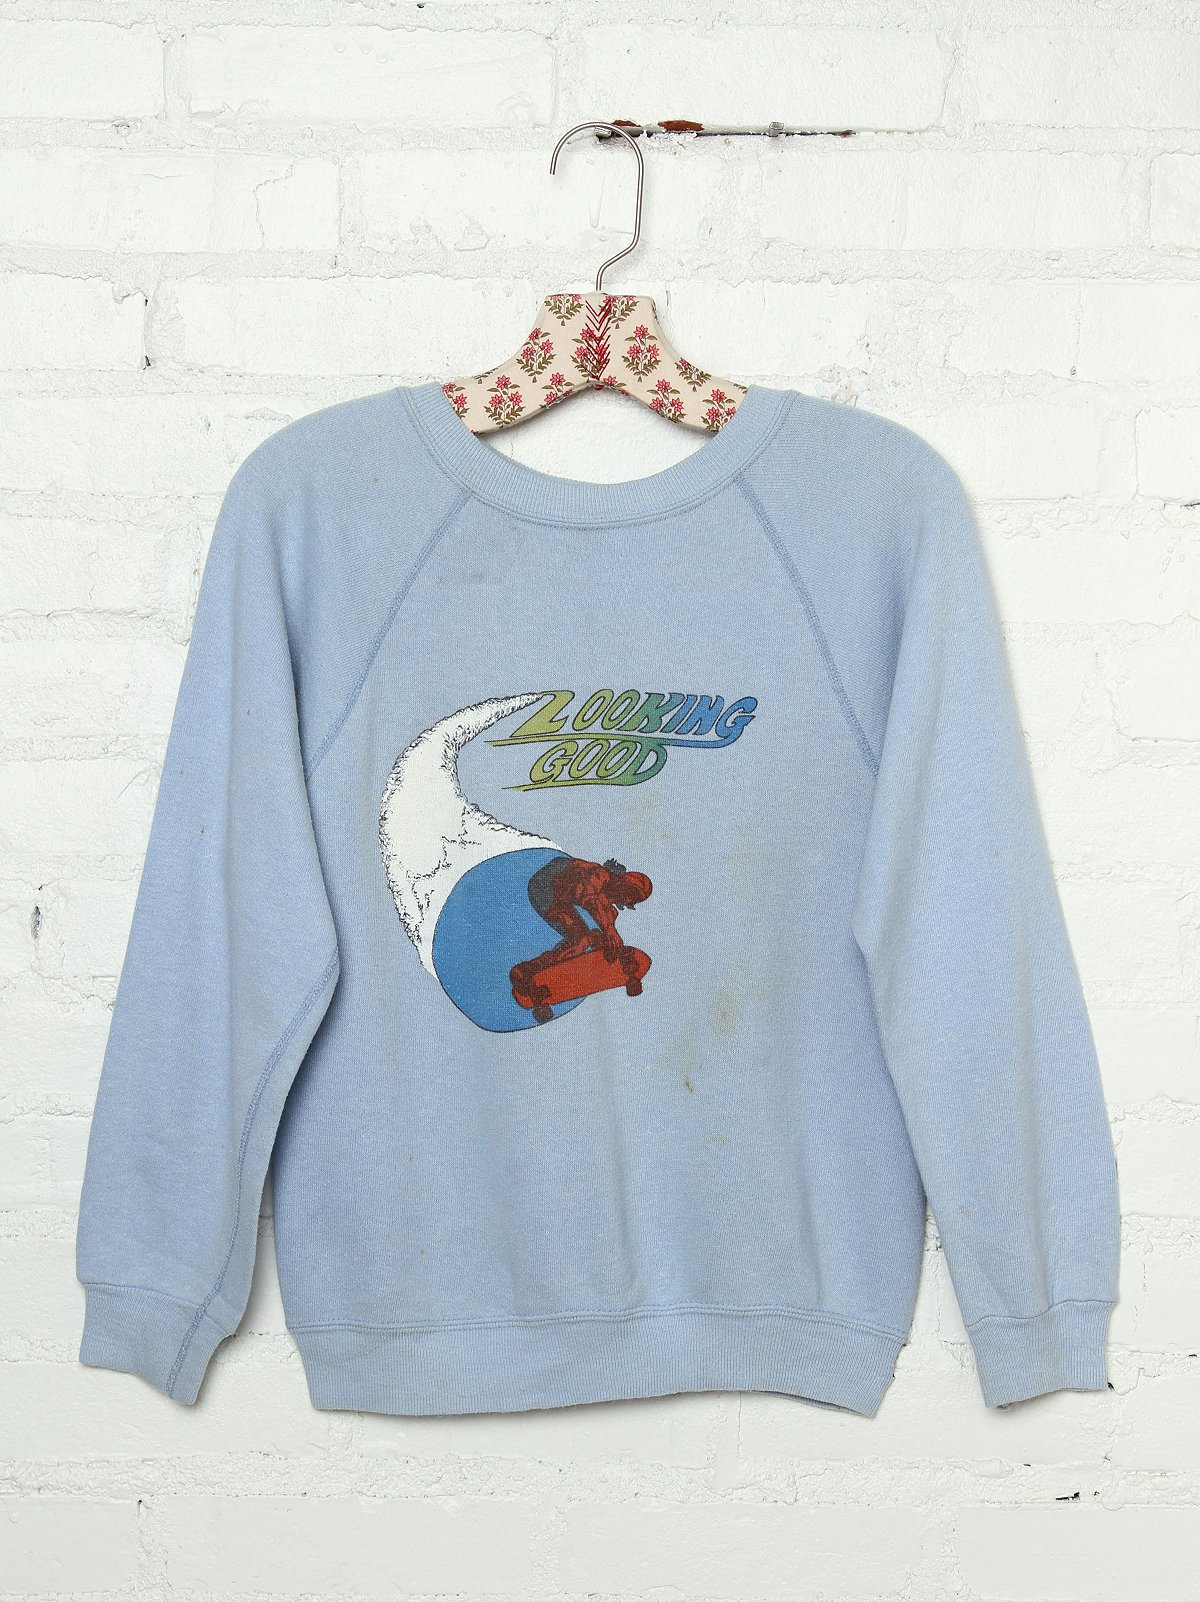 Vintage Looking Good Graphic Pullover